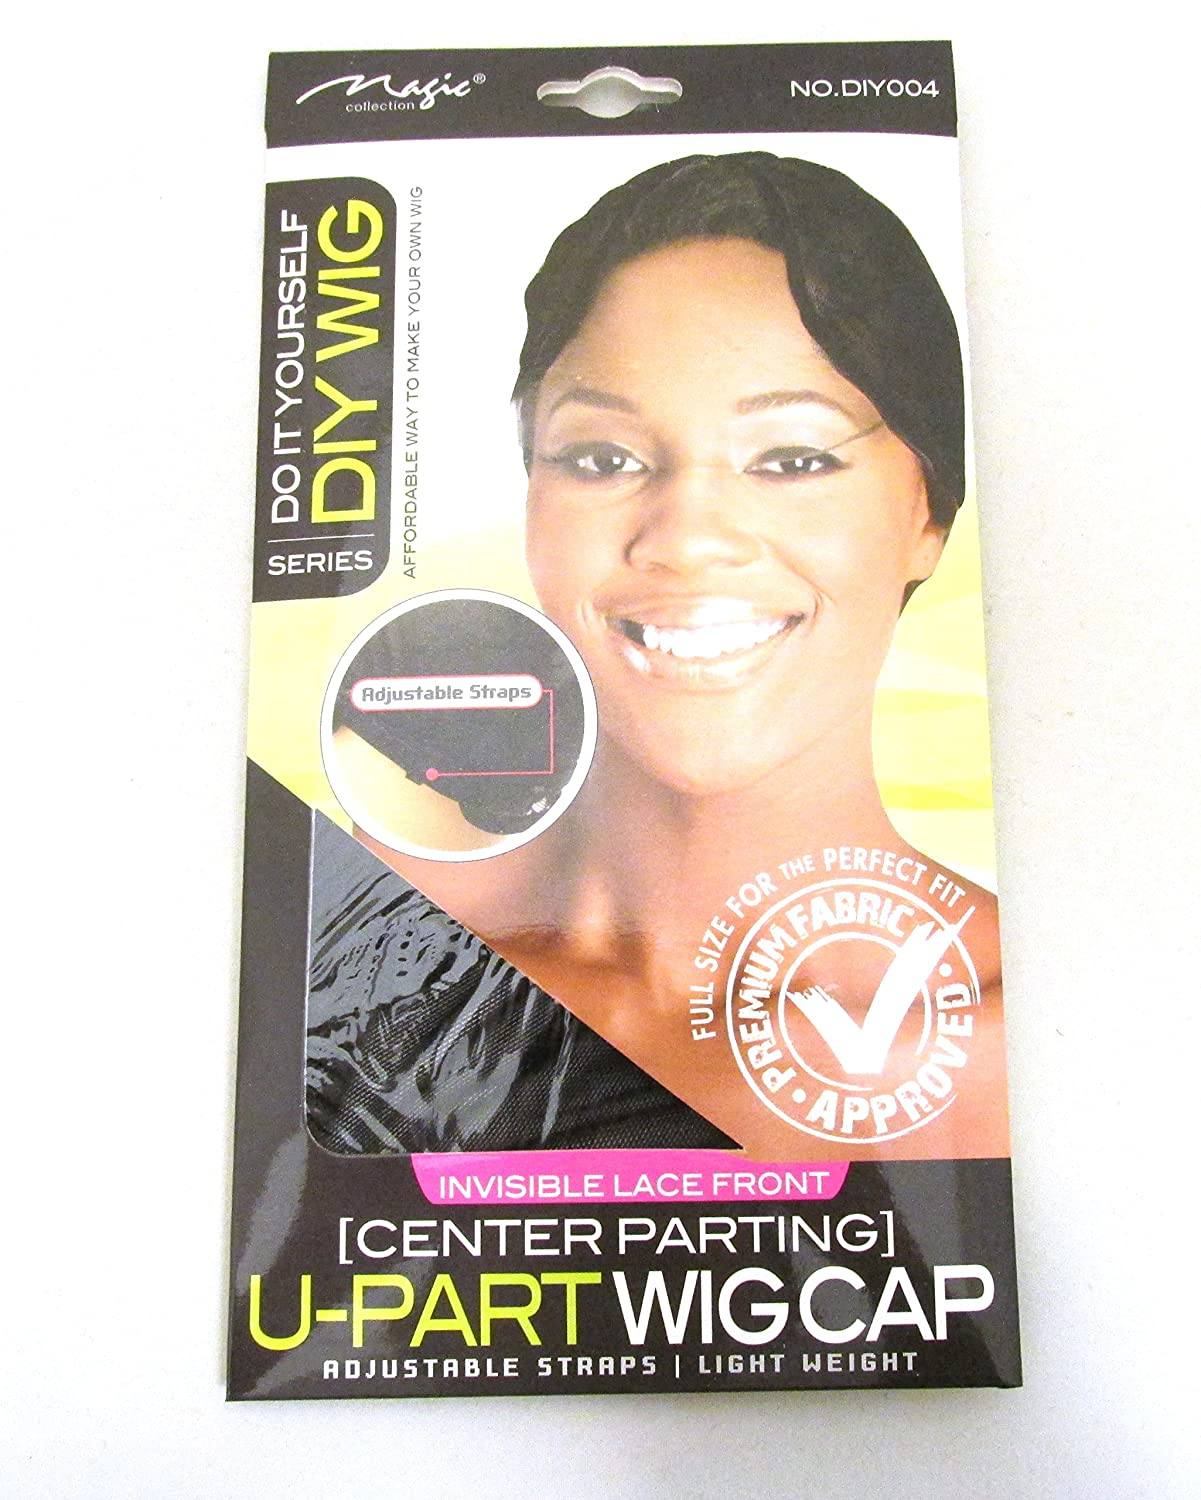 Magic Do It Yourself Invisible Lace Front (Center Parting) U-Part Wig Cap, Adjustable straps, lightweight, premium fabric, fabric, perfect fit, full size, won't fall off your head, one size fits all, breathable material, hair, hair extensions, weave, invis